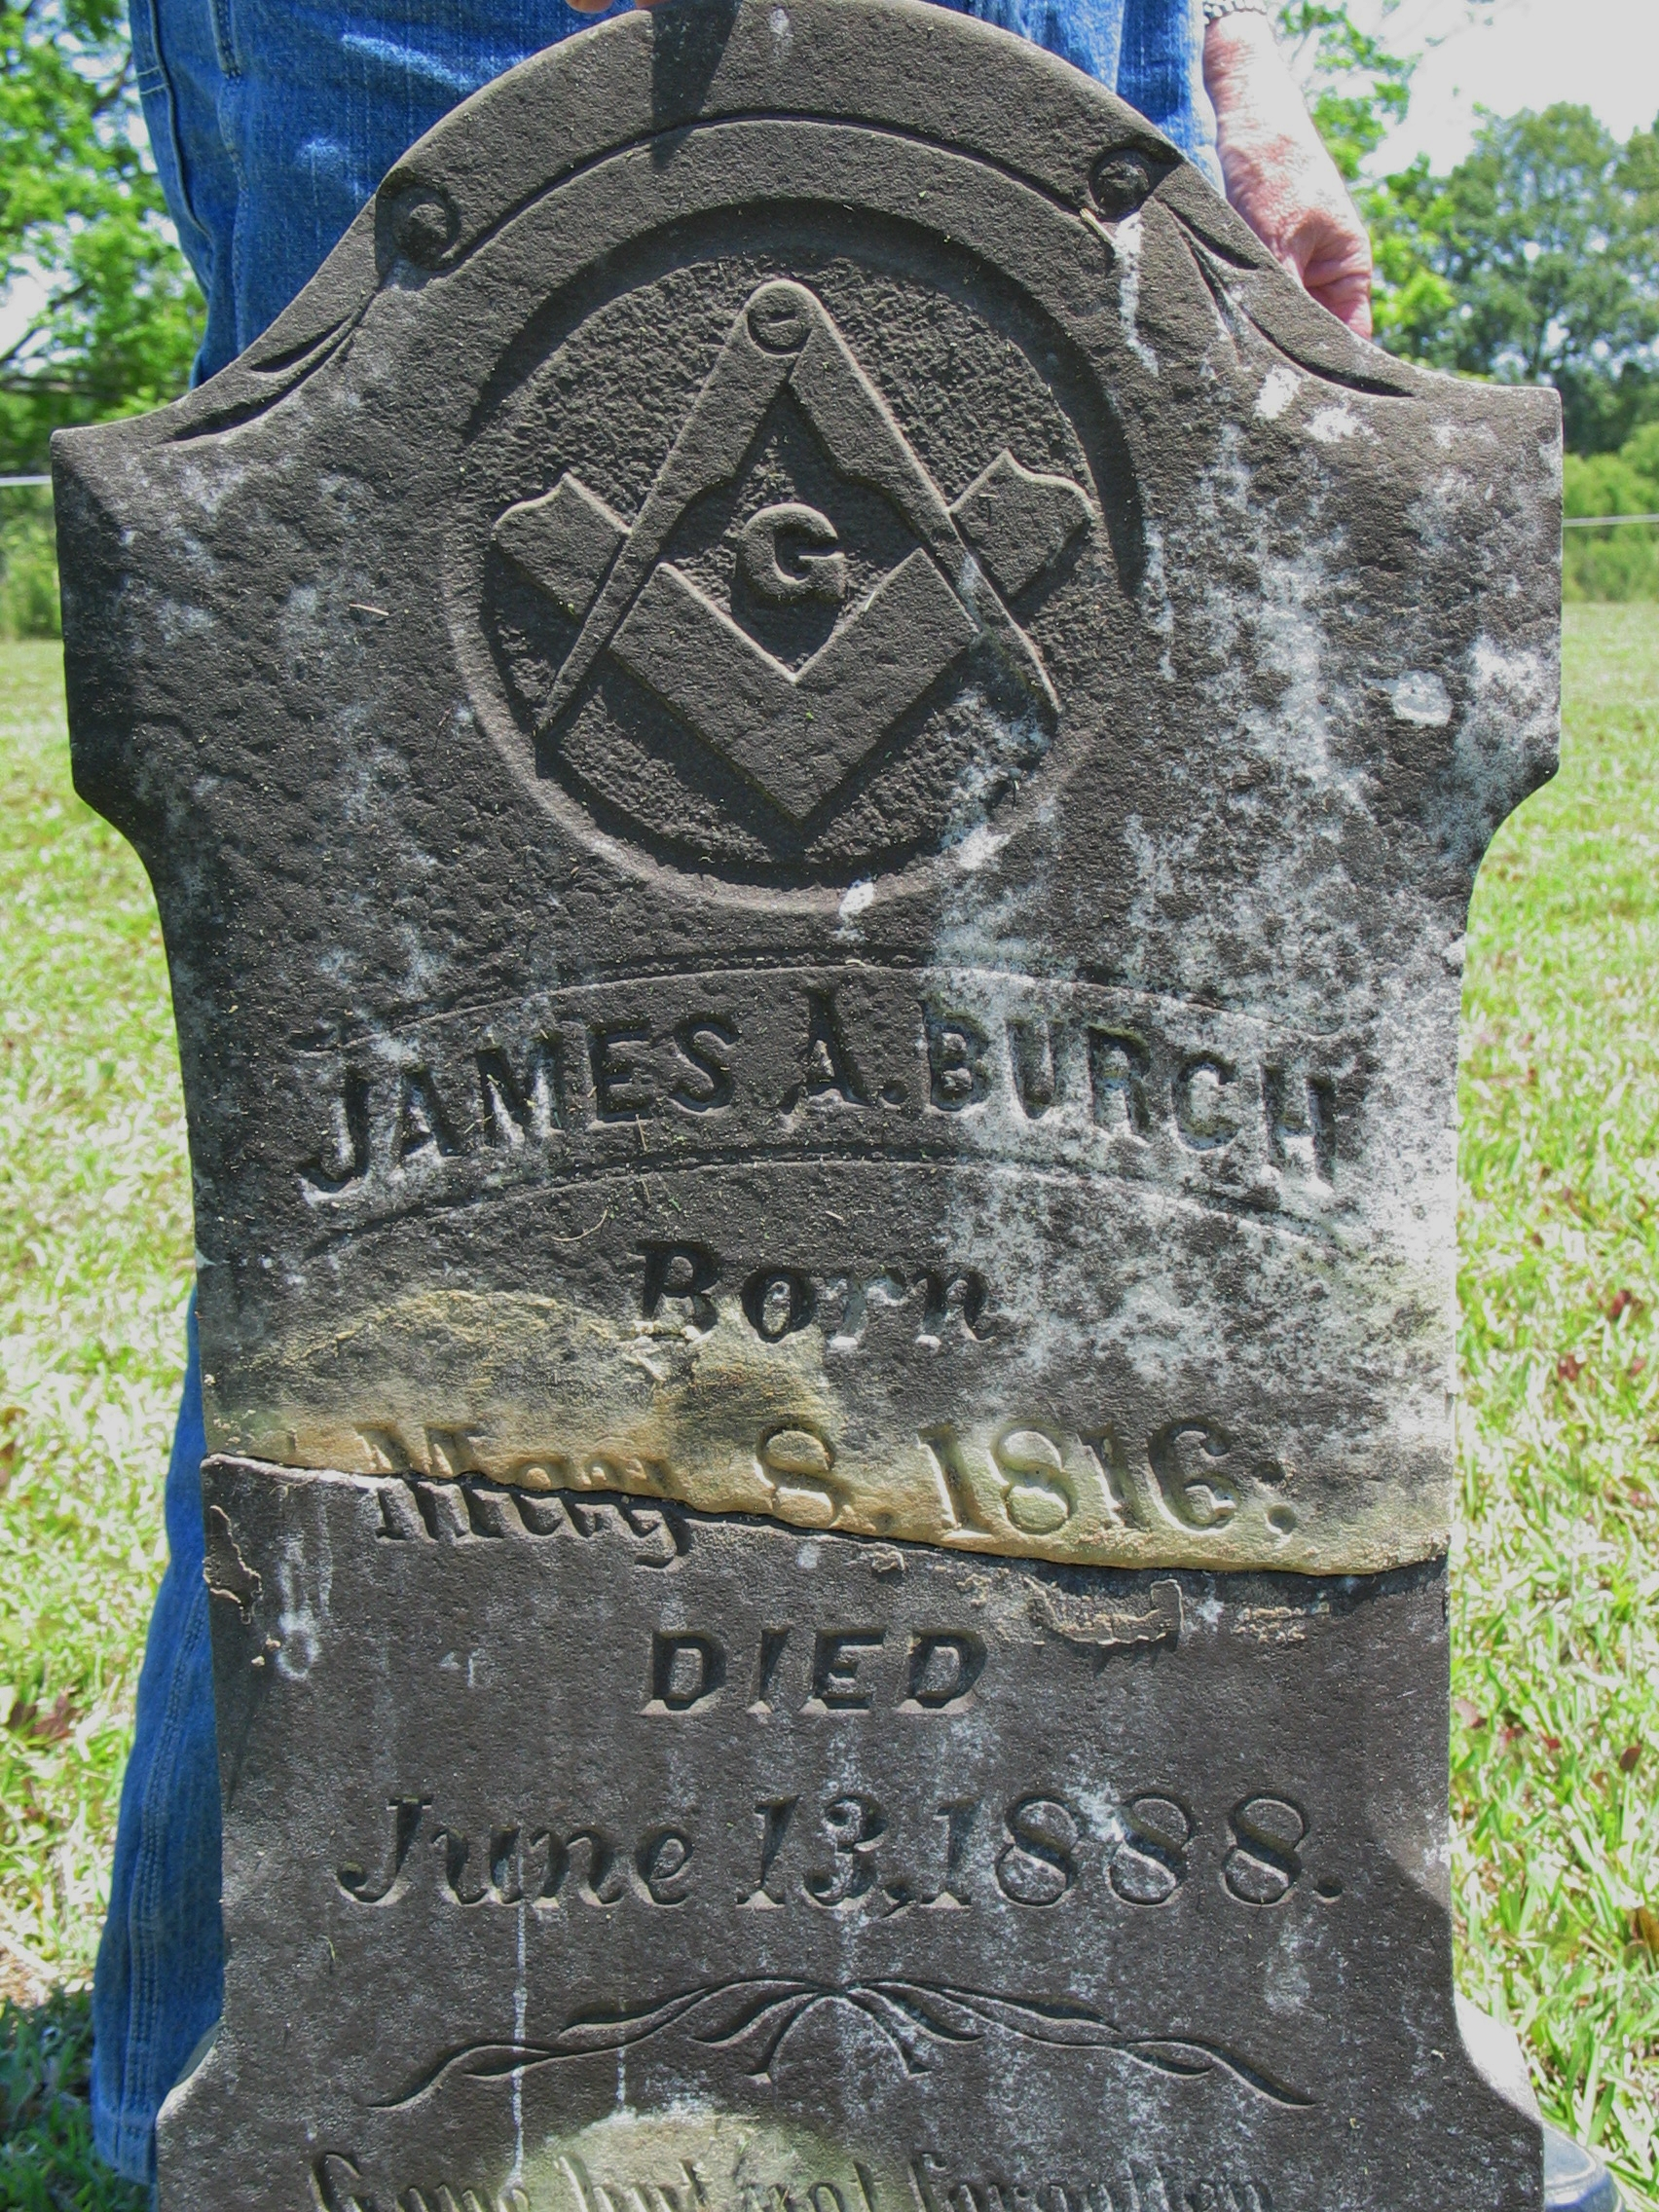 James Albert Burch